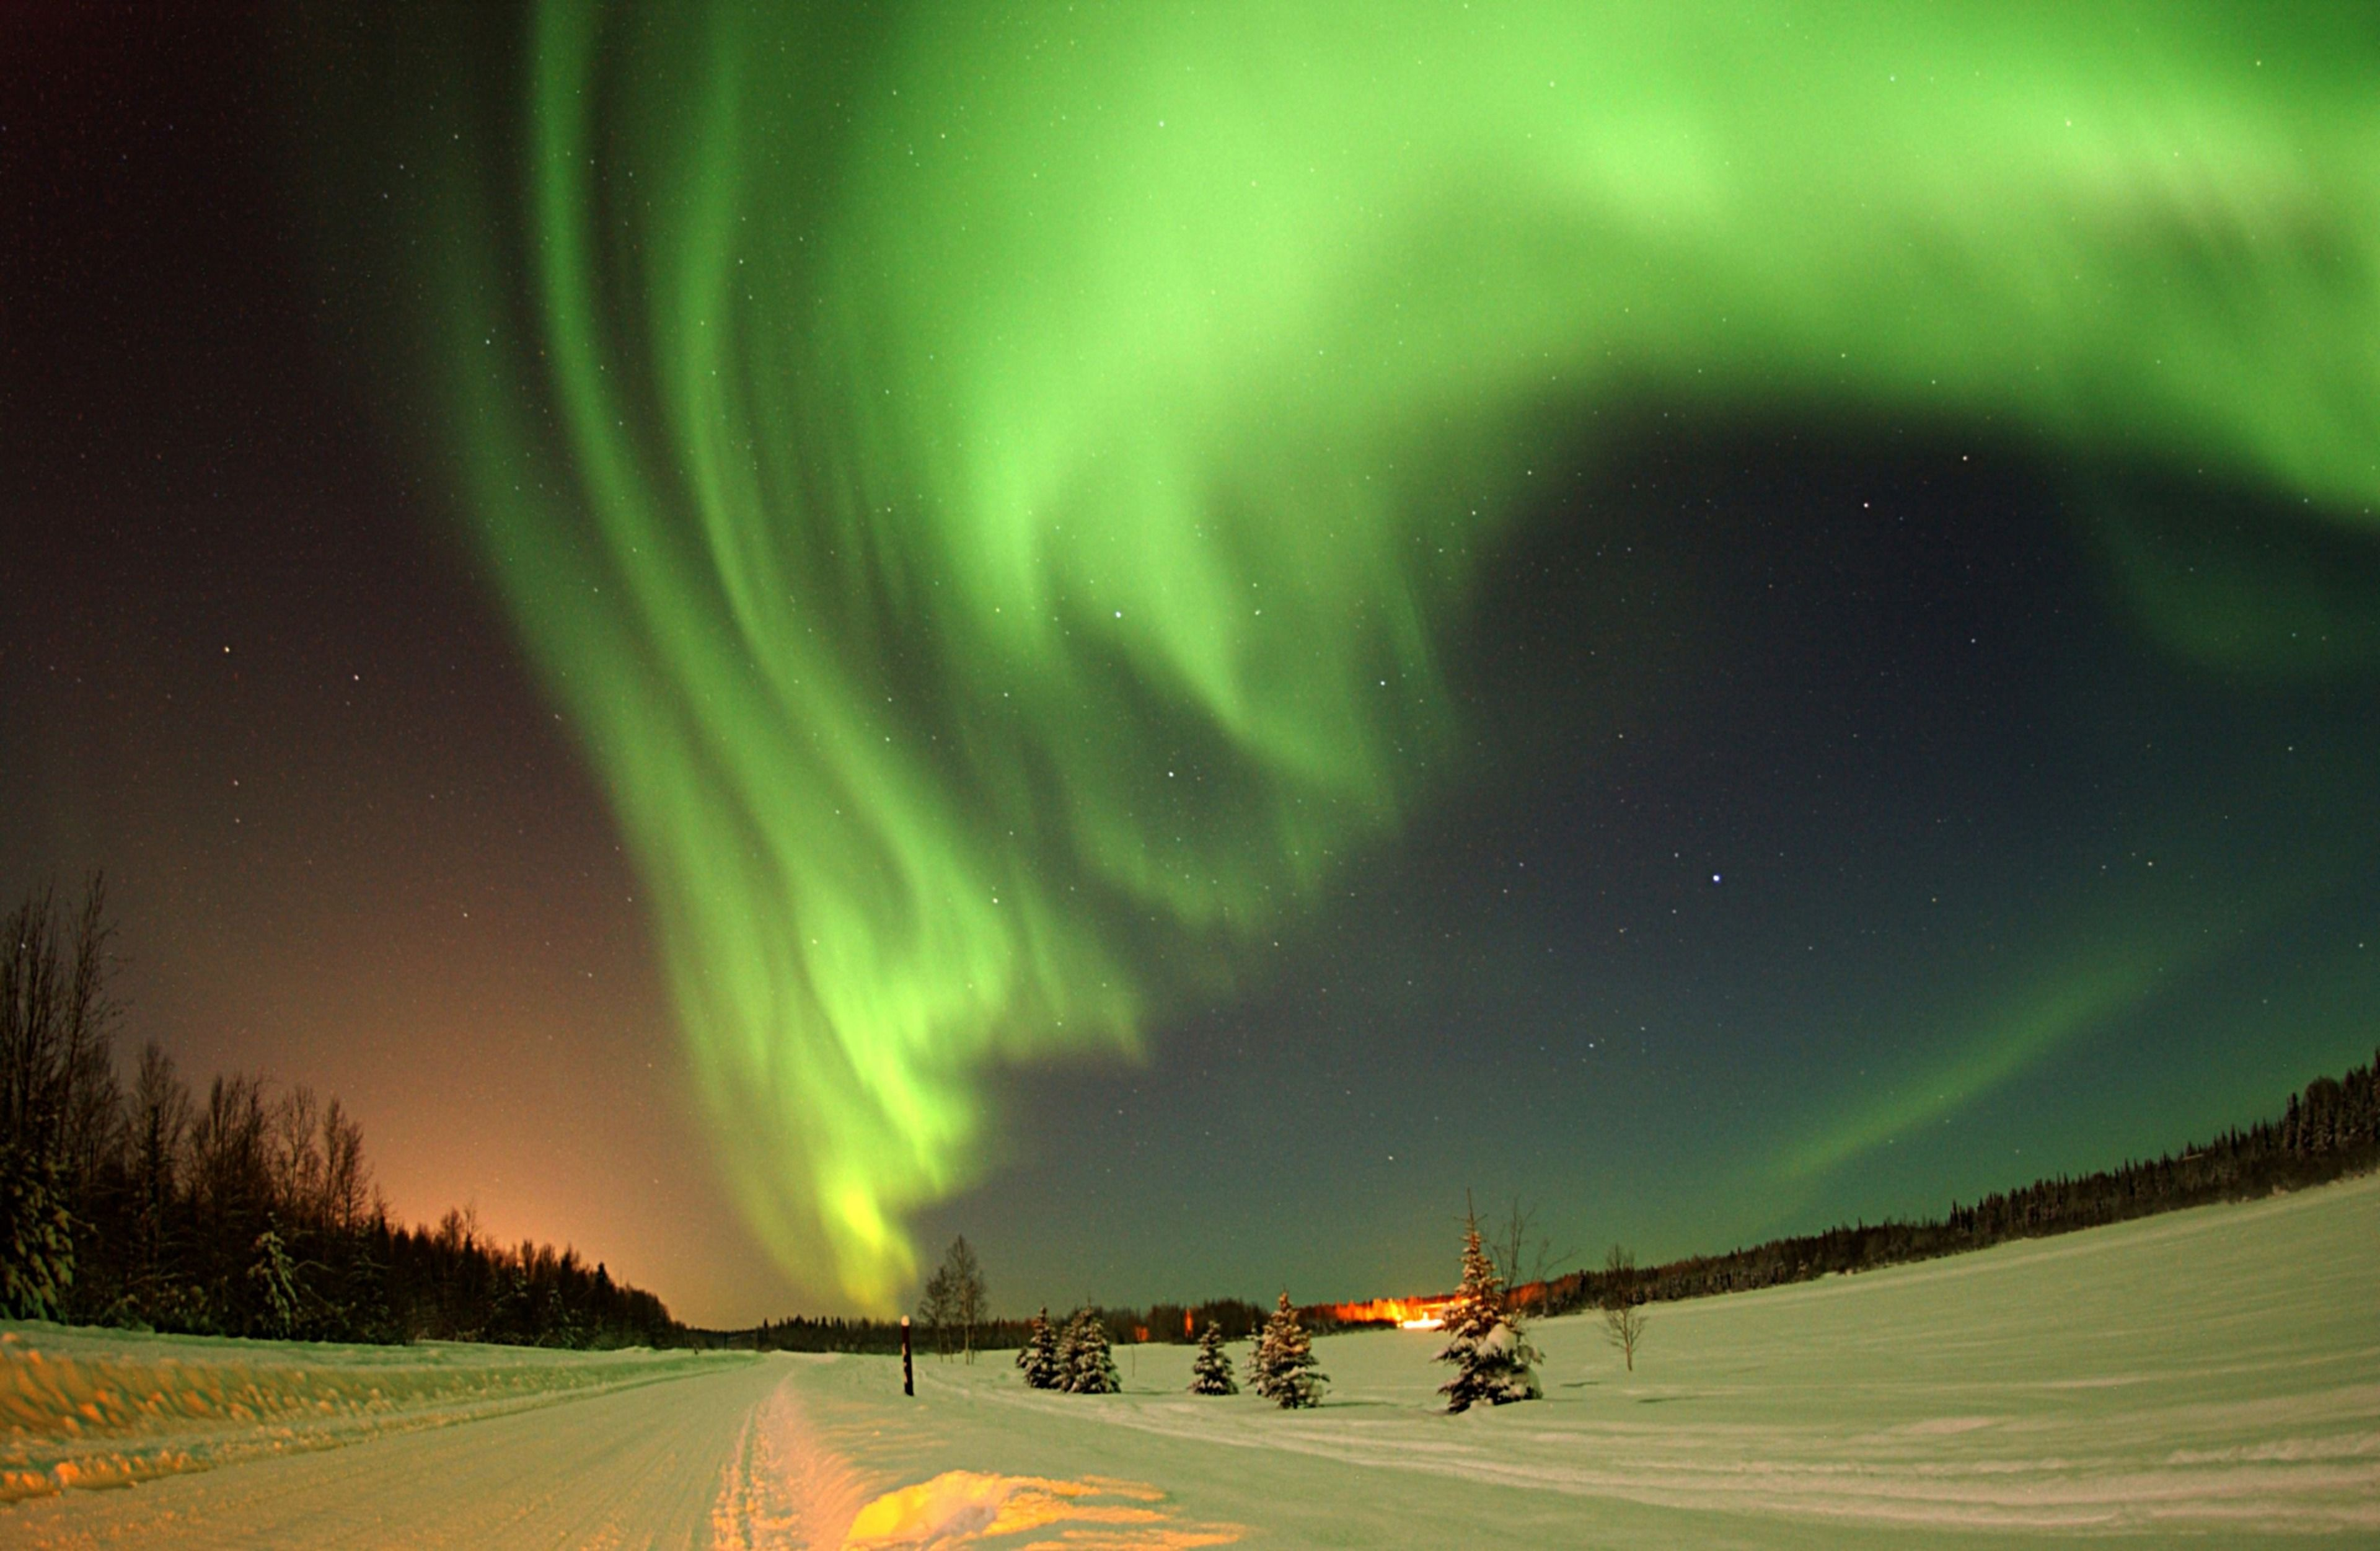 Vibrant view of the Northern Lights in Kiruna